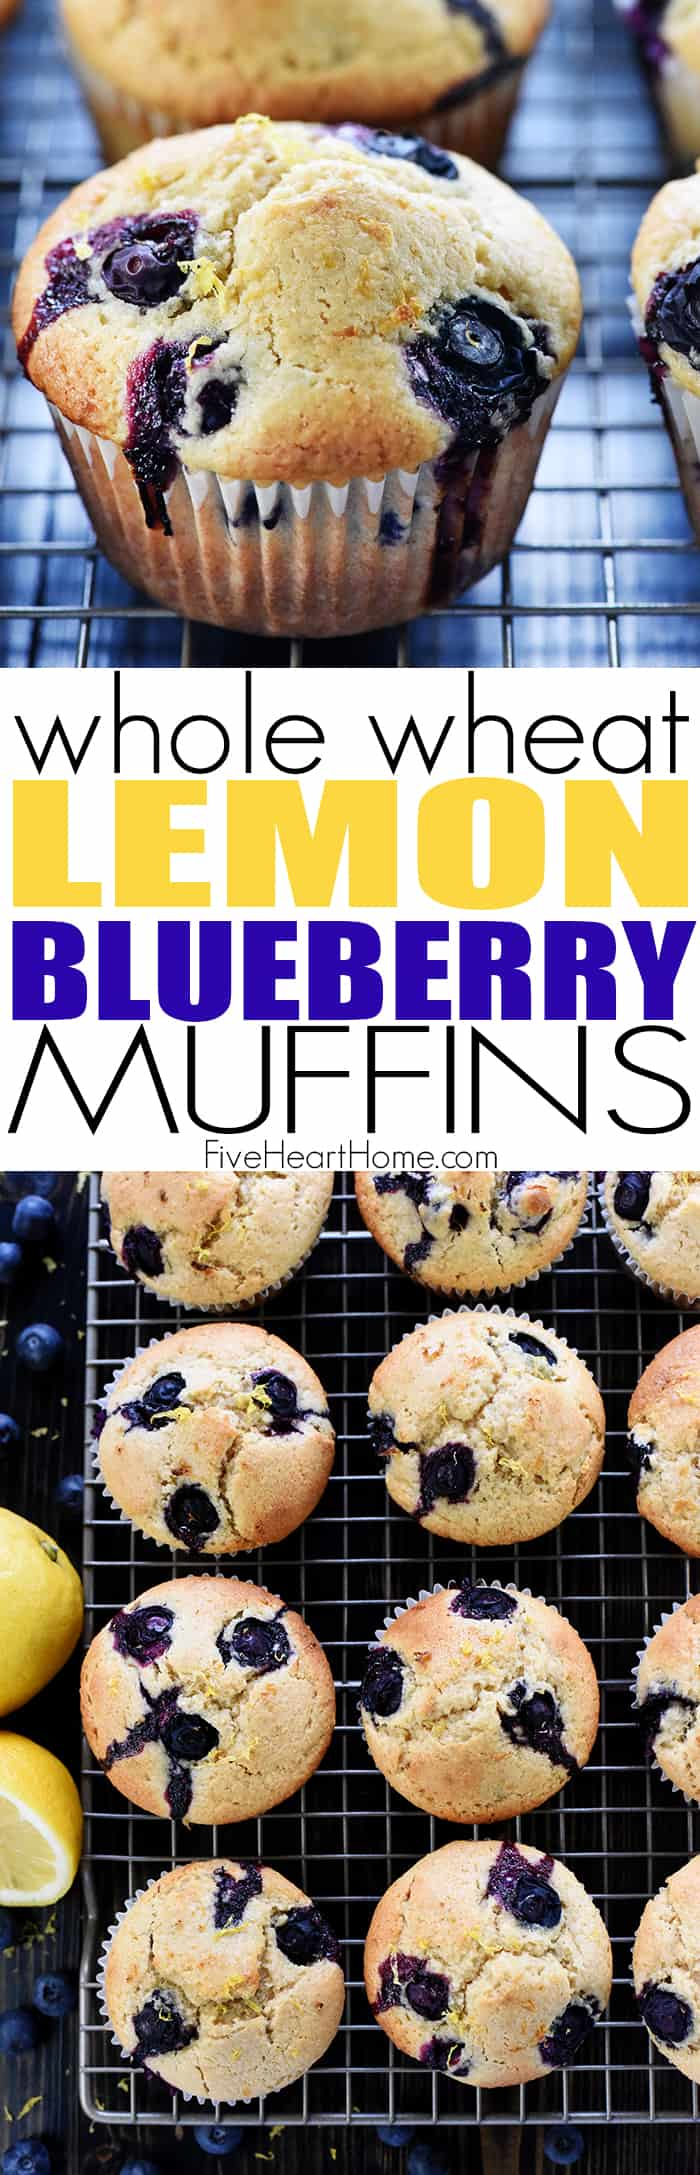 Lemon Blueberry Muffins ~ light, tender, and bursting with fresh lemon, juicy blueberries, and whole wheat flour for a wholesome breakfast or snack! | FiveHeartHome.com via @fivehearthome